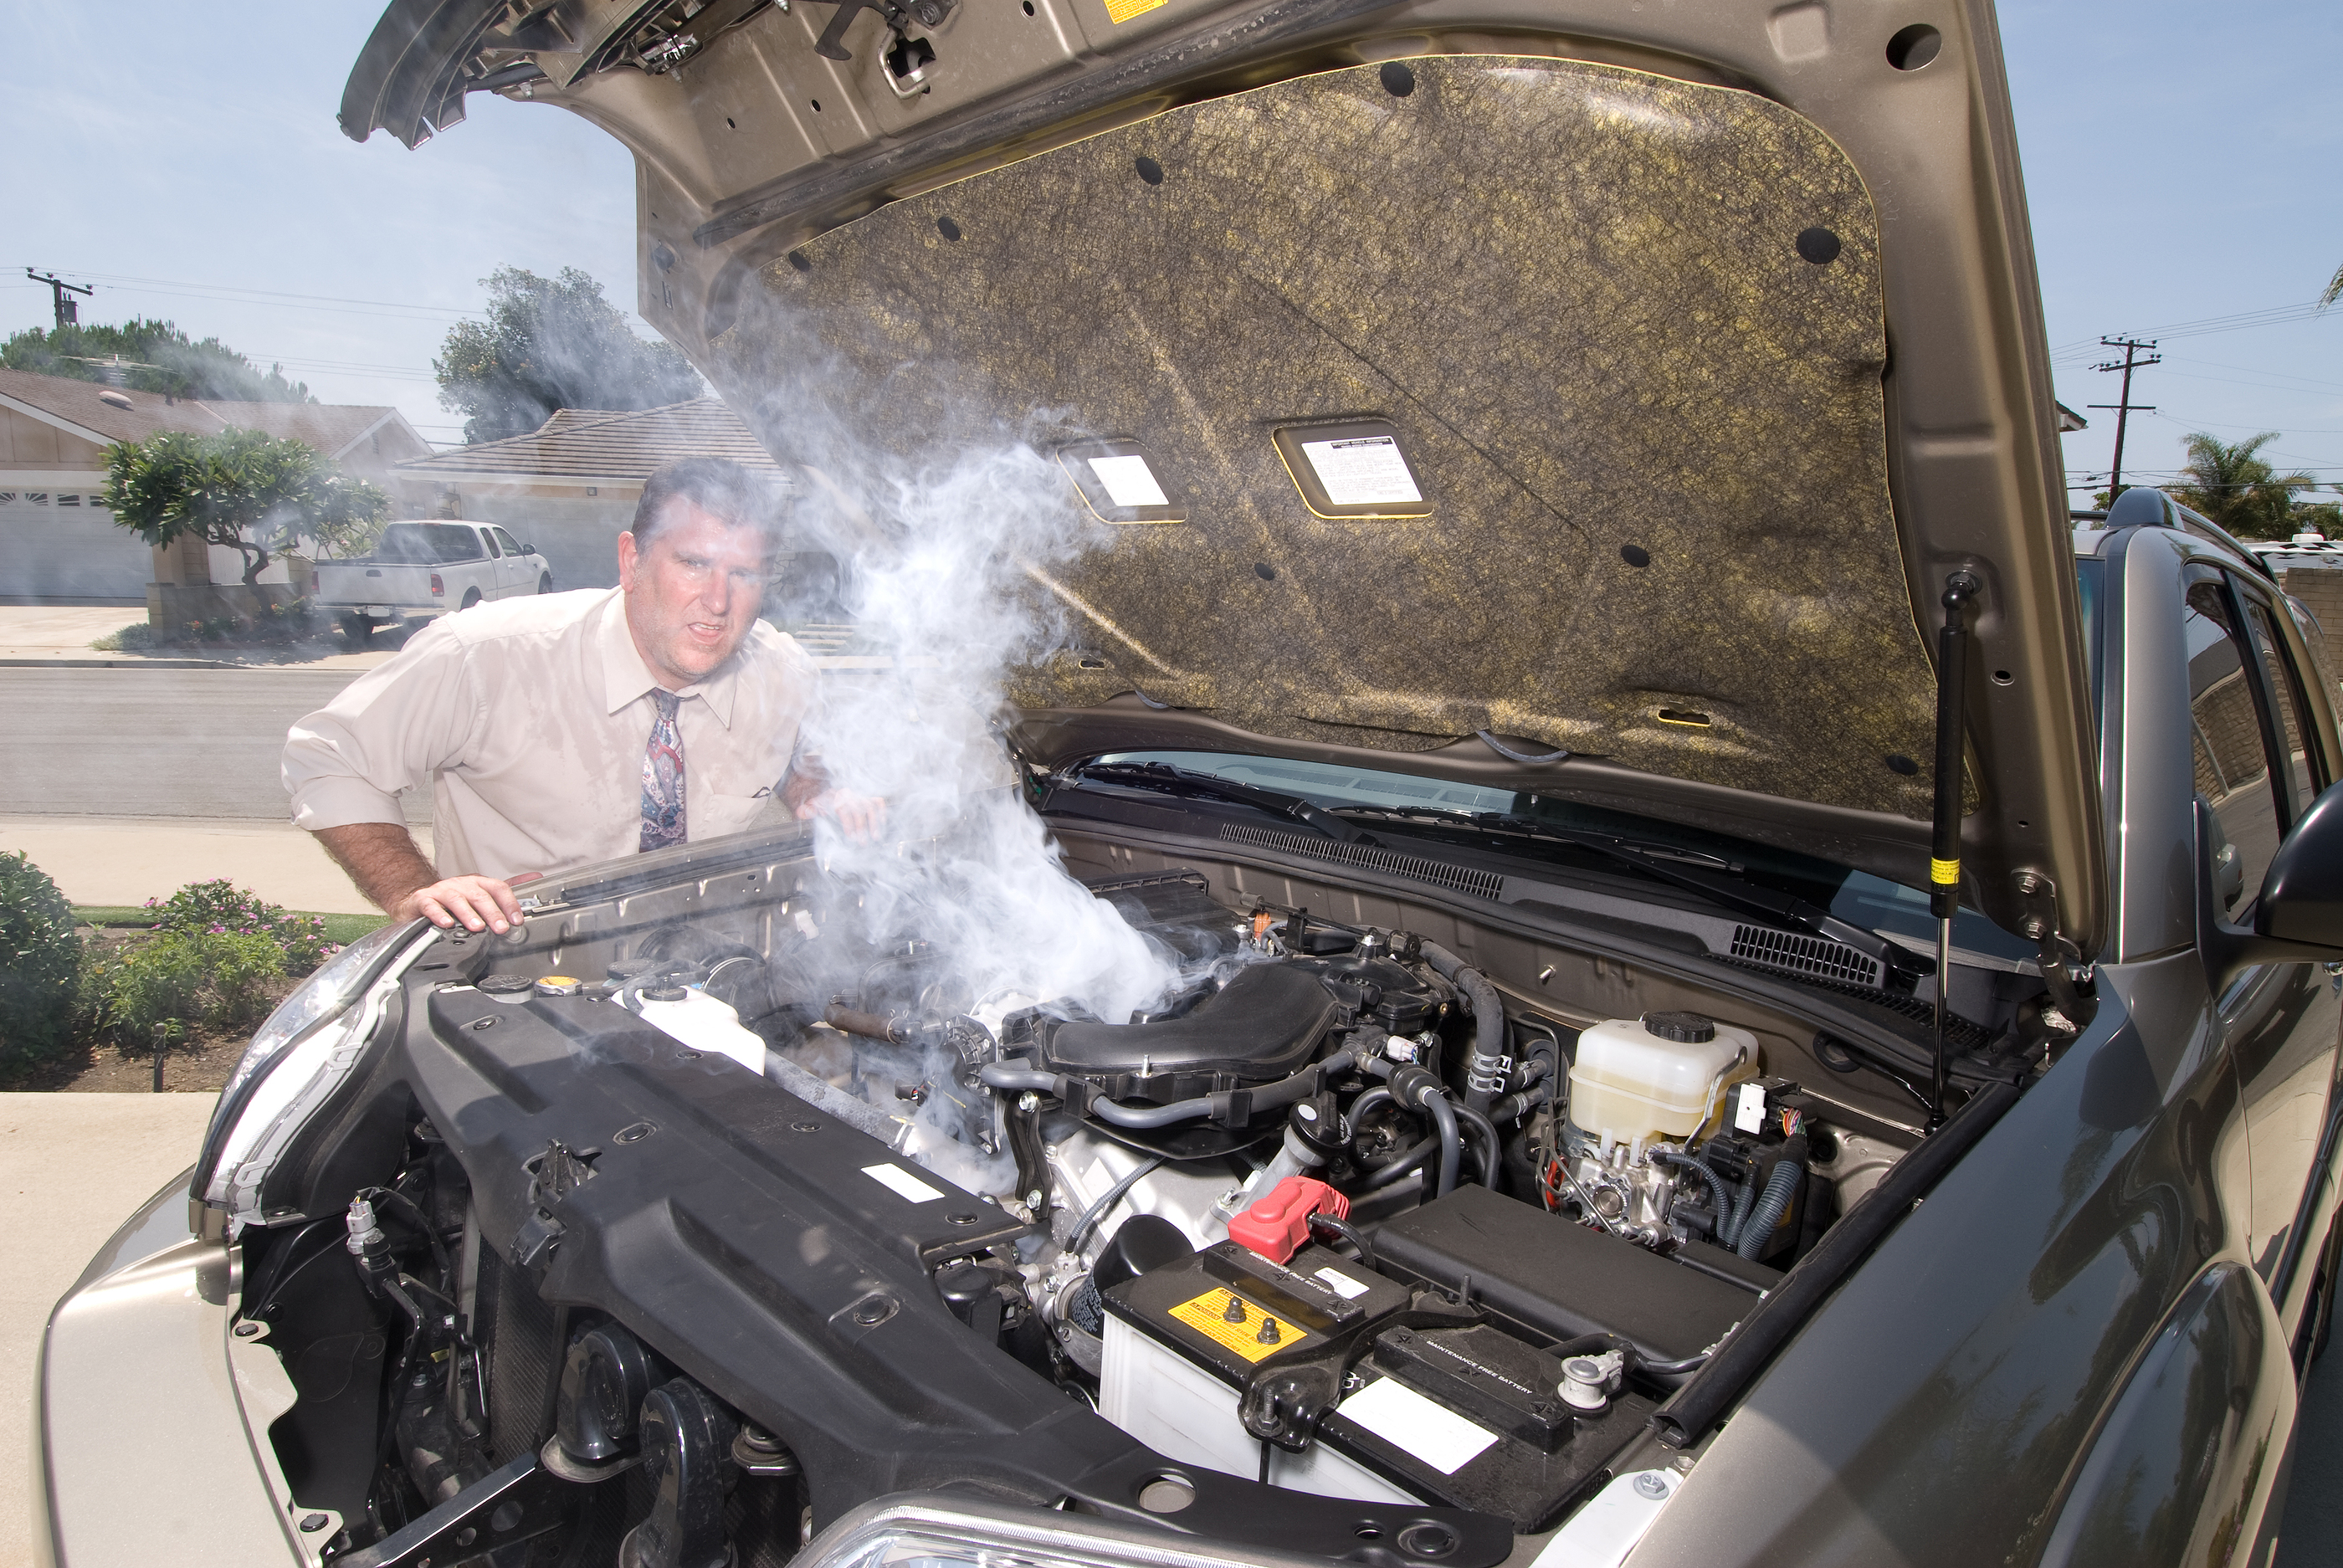 Why Is My Car Overheating? What to Do If You Have a Car Running Hot